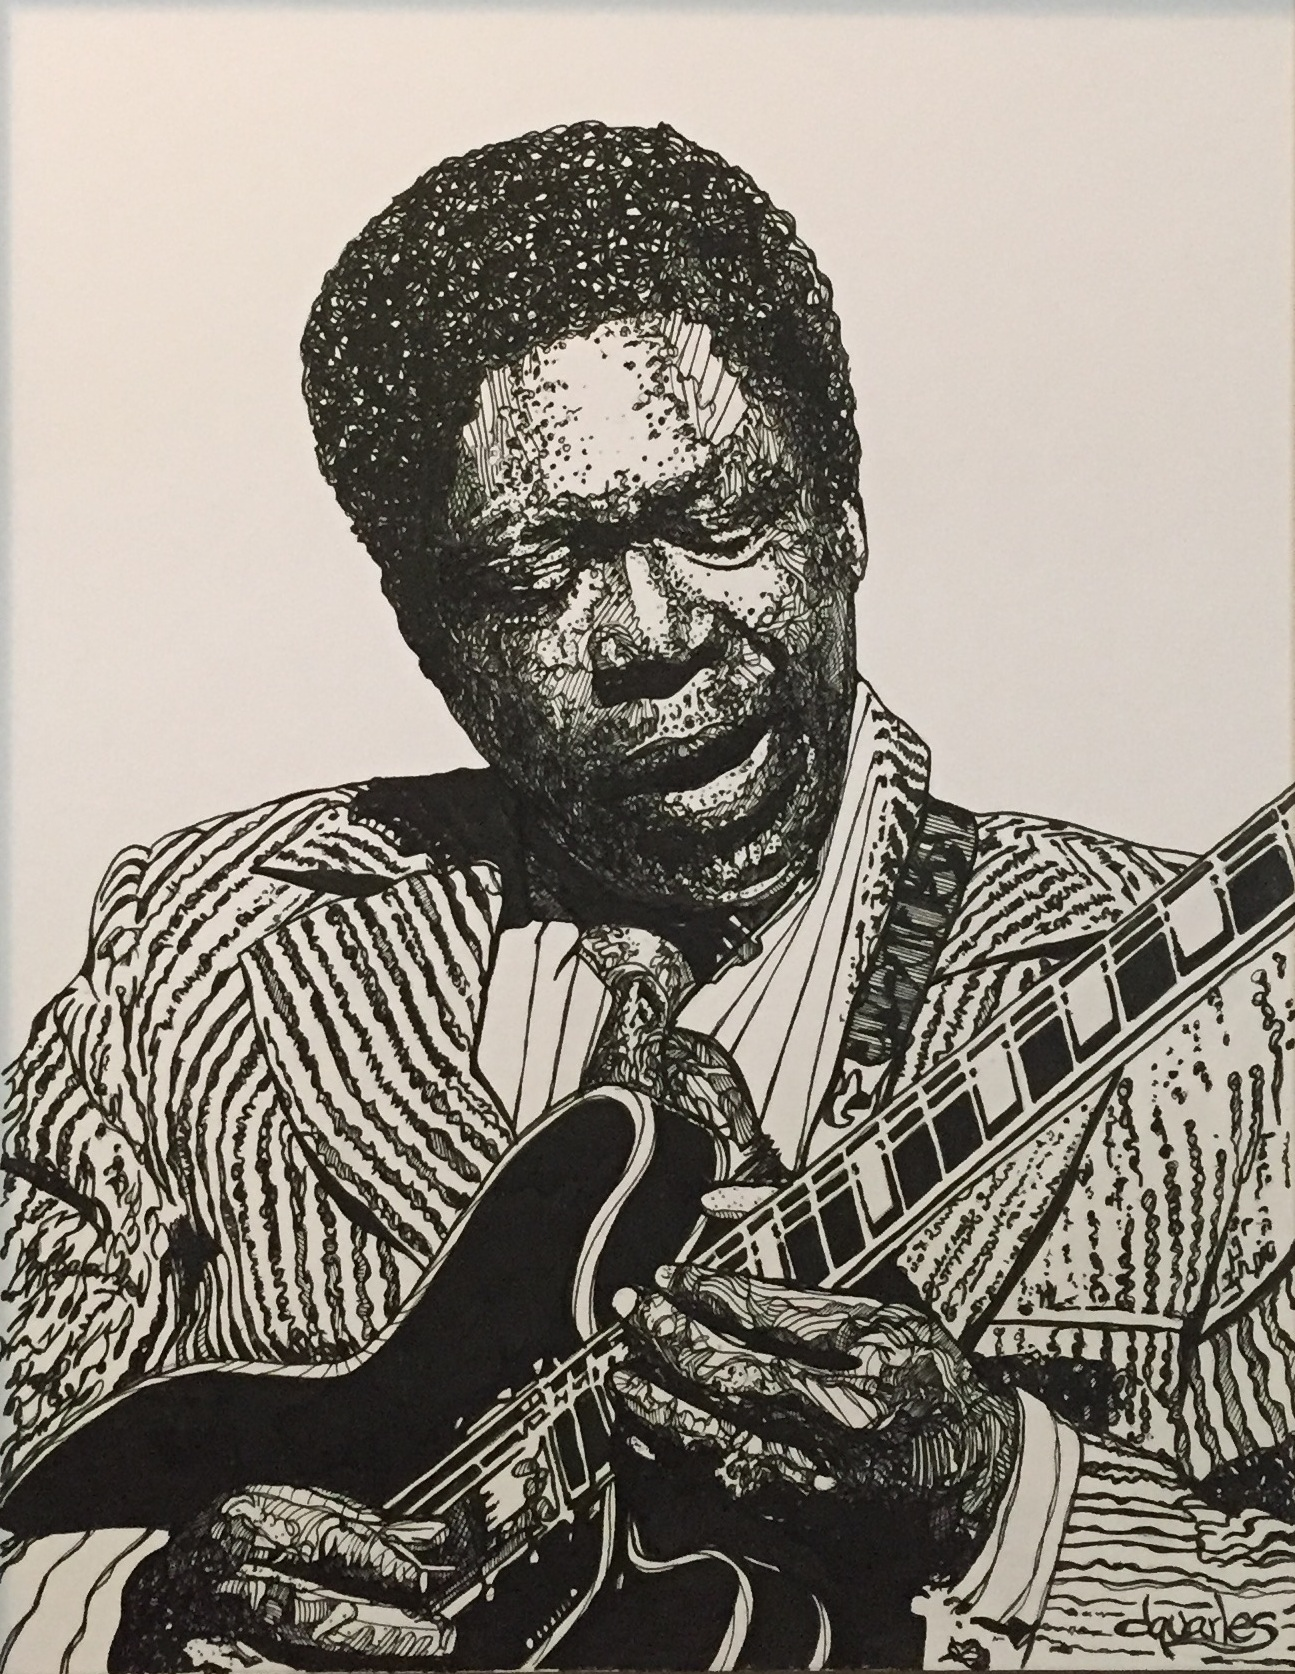 BB King, pen and Ink on board